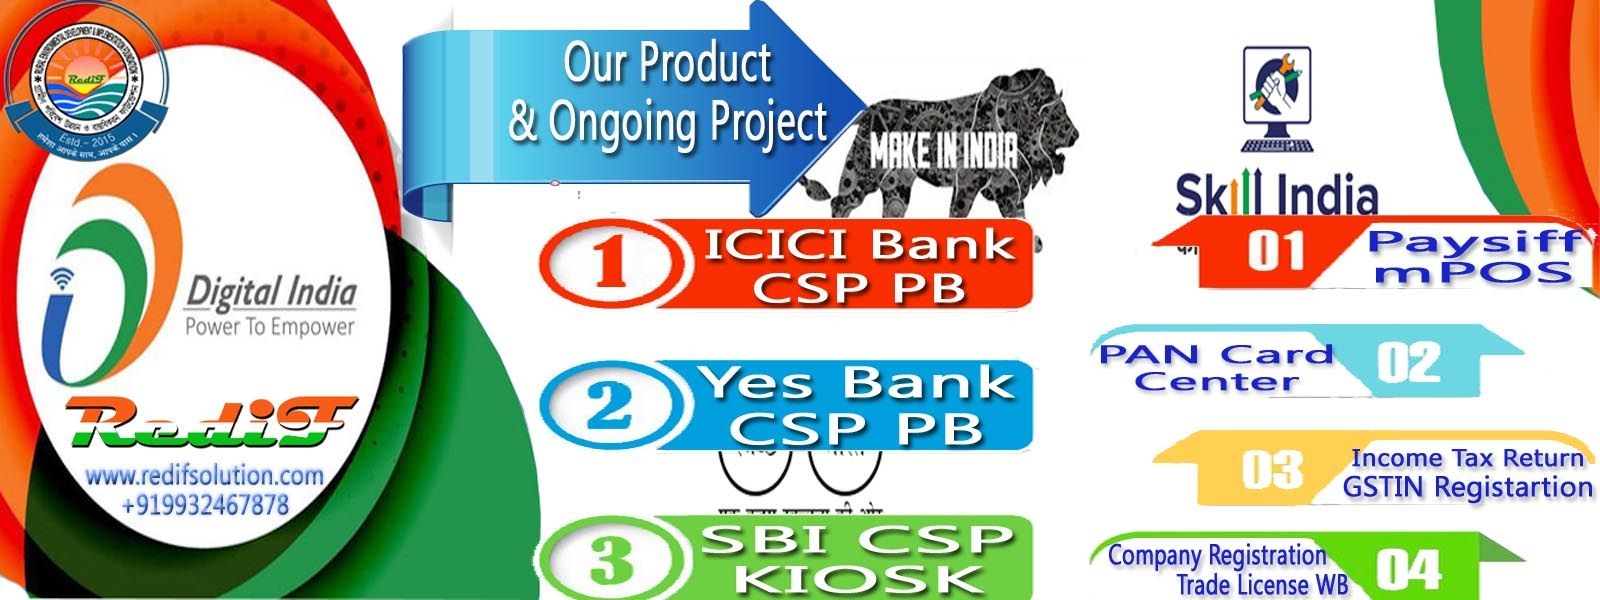 Our Activities Image By Rural Environmental Developmen Yes Bank